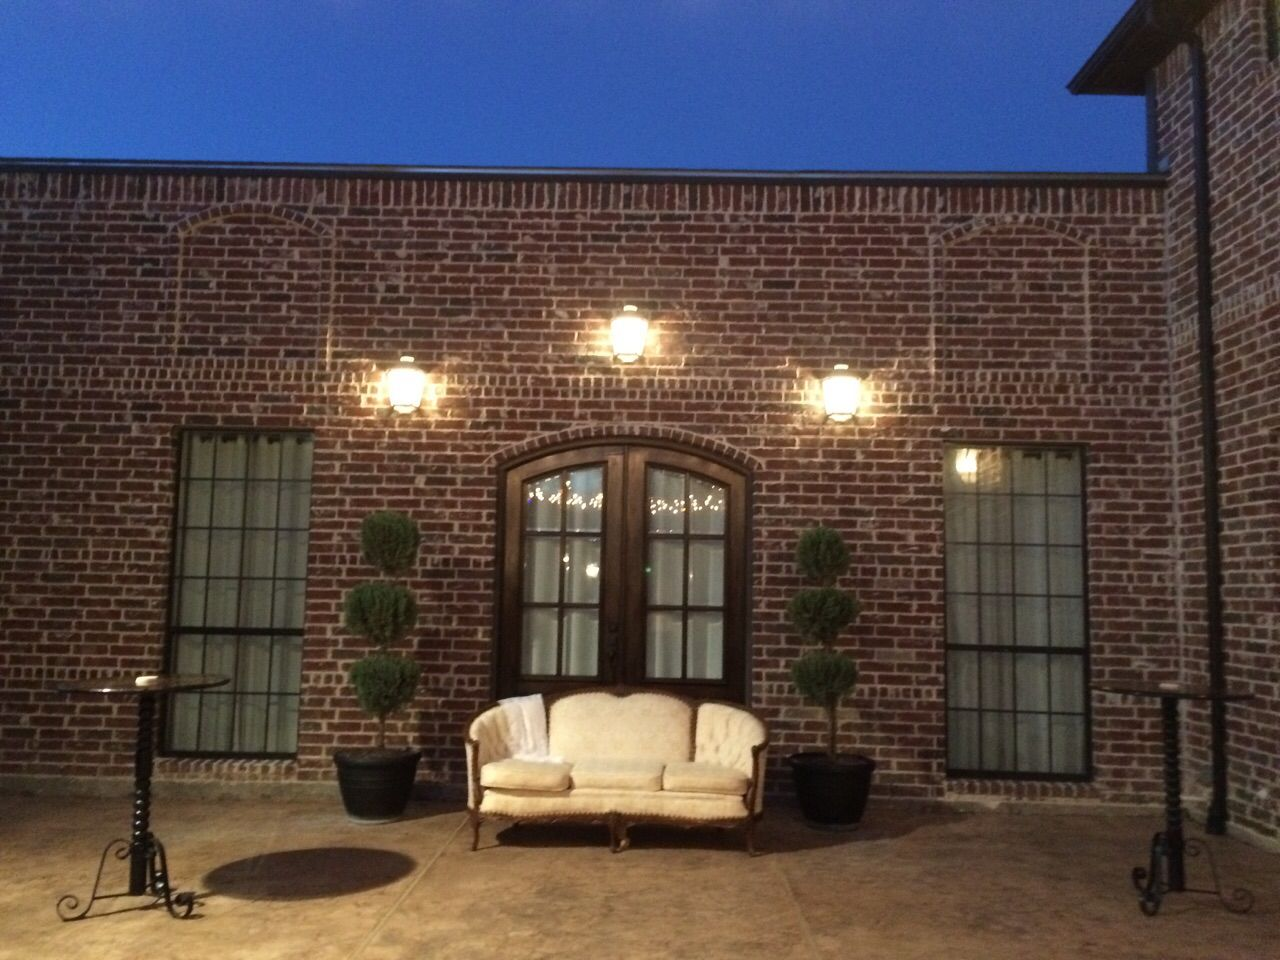 outdoor wedding venues in fort worth tx%0A Casual seating in The Courtyard of La Cour Venue  McKinney Event Venue  Outdoor  Wedding